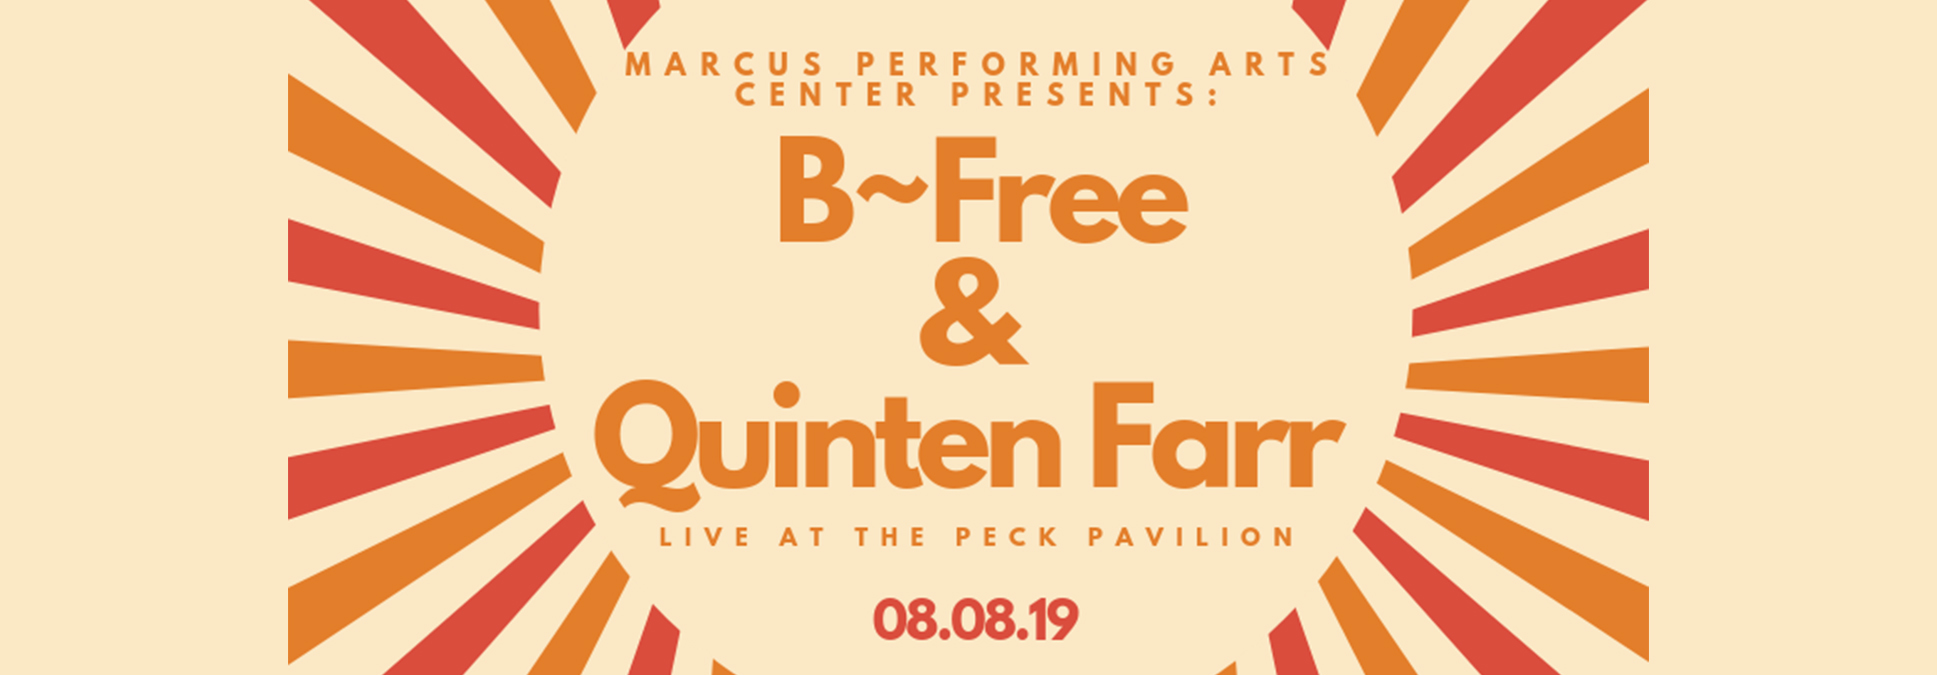 BFREE QUINTENFARR at the Marcus Center in Milwaukee